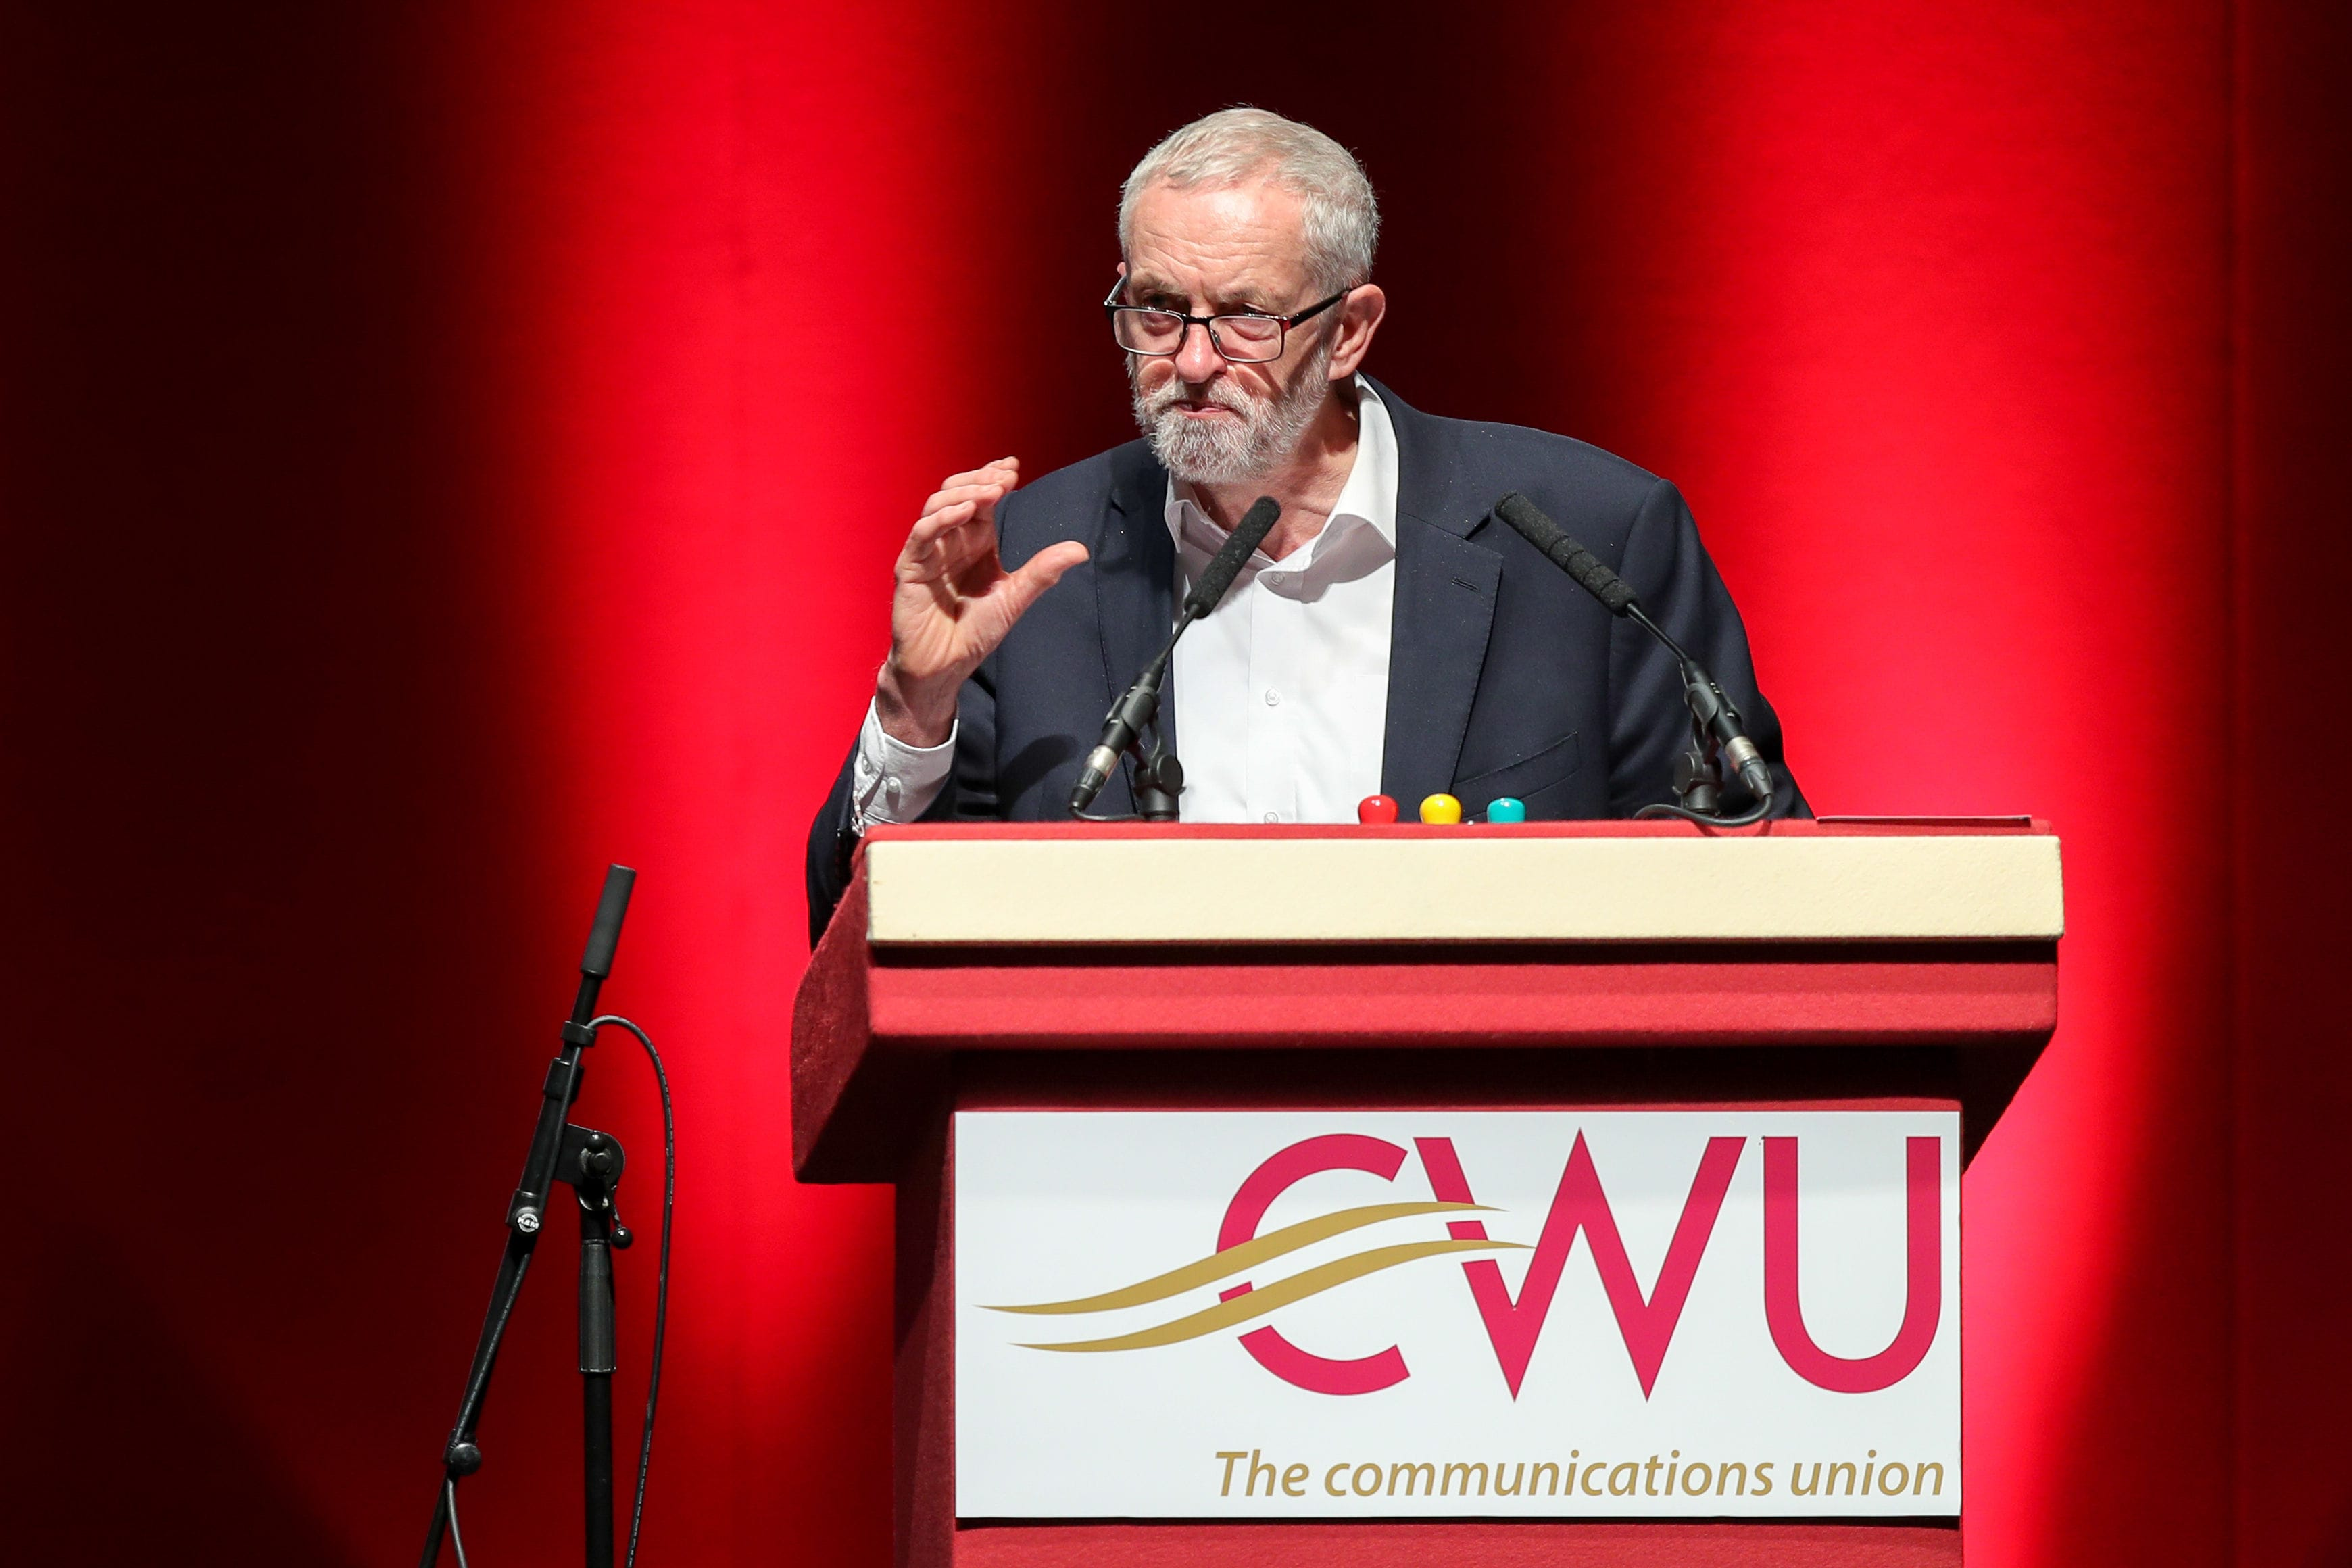 Chair Of Jewish Voice For Labour Denies Anti-Semitism Claims In Fiery Interview